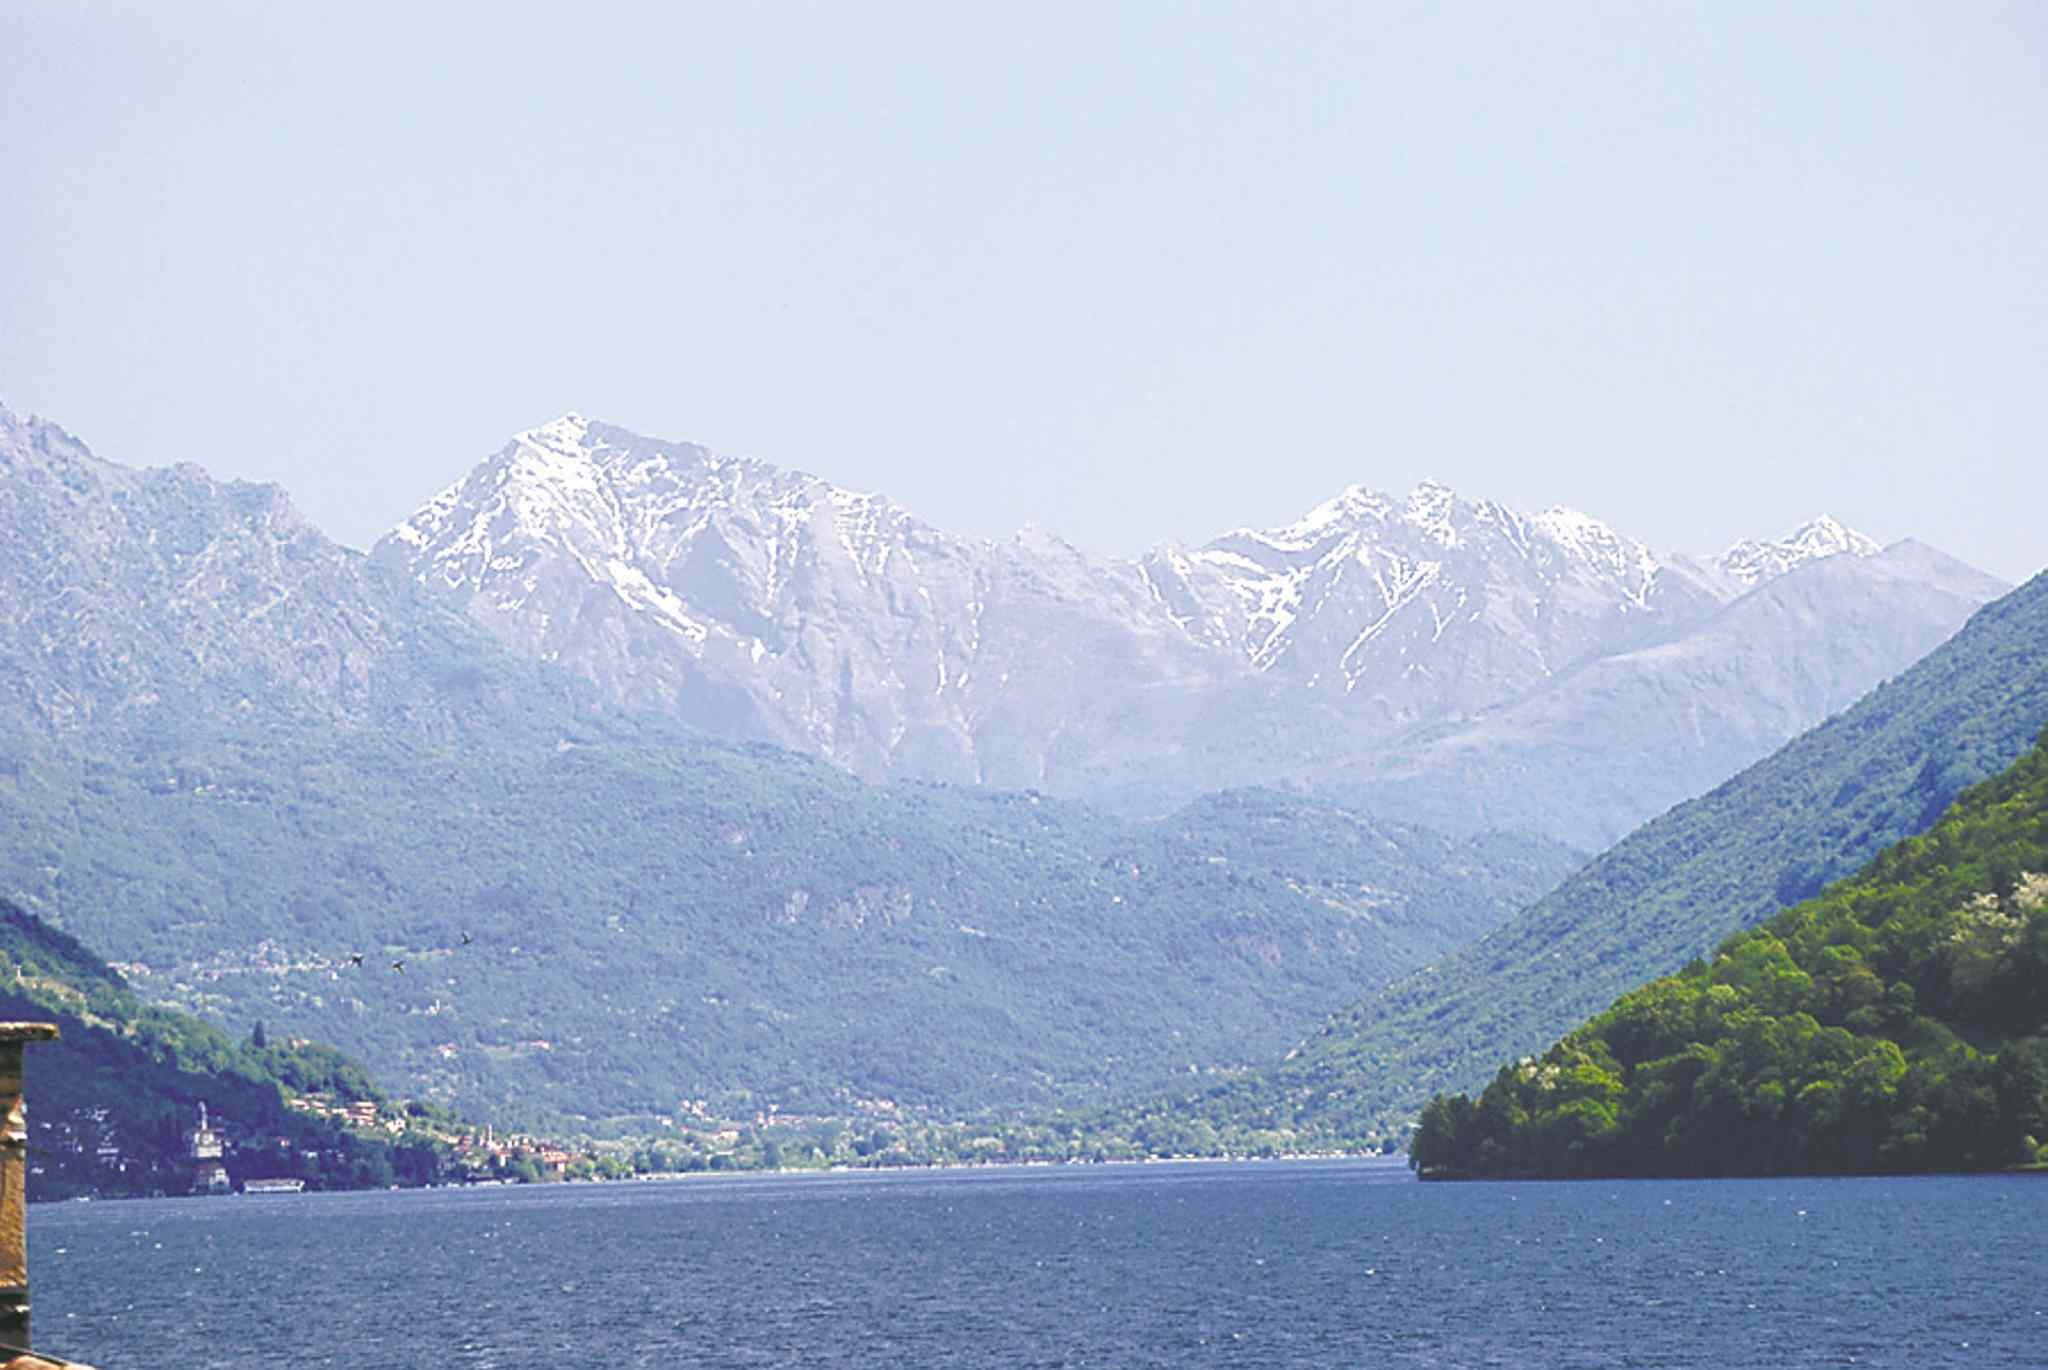 It is the sights and history of the major countries like Switzerland that are still attracting worldwide visitors.